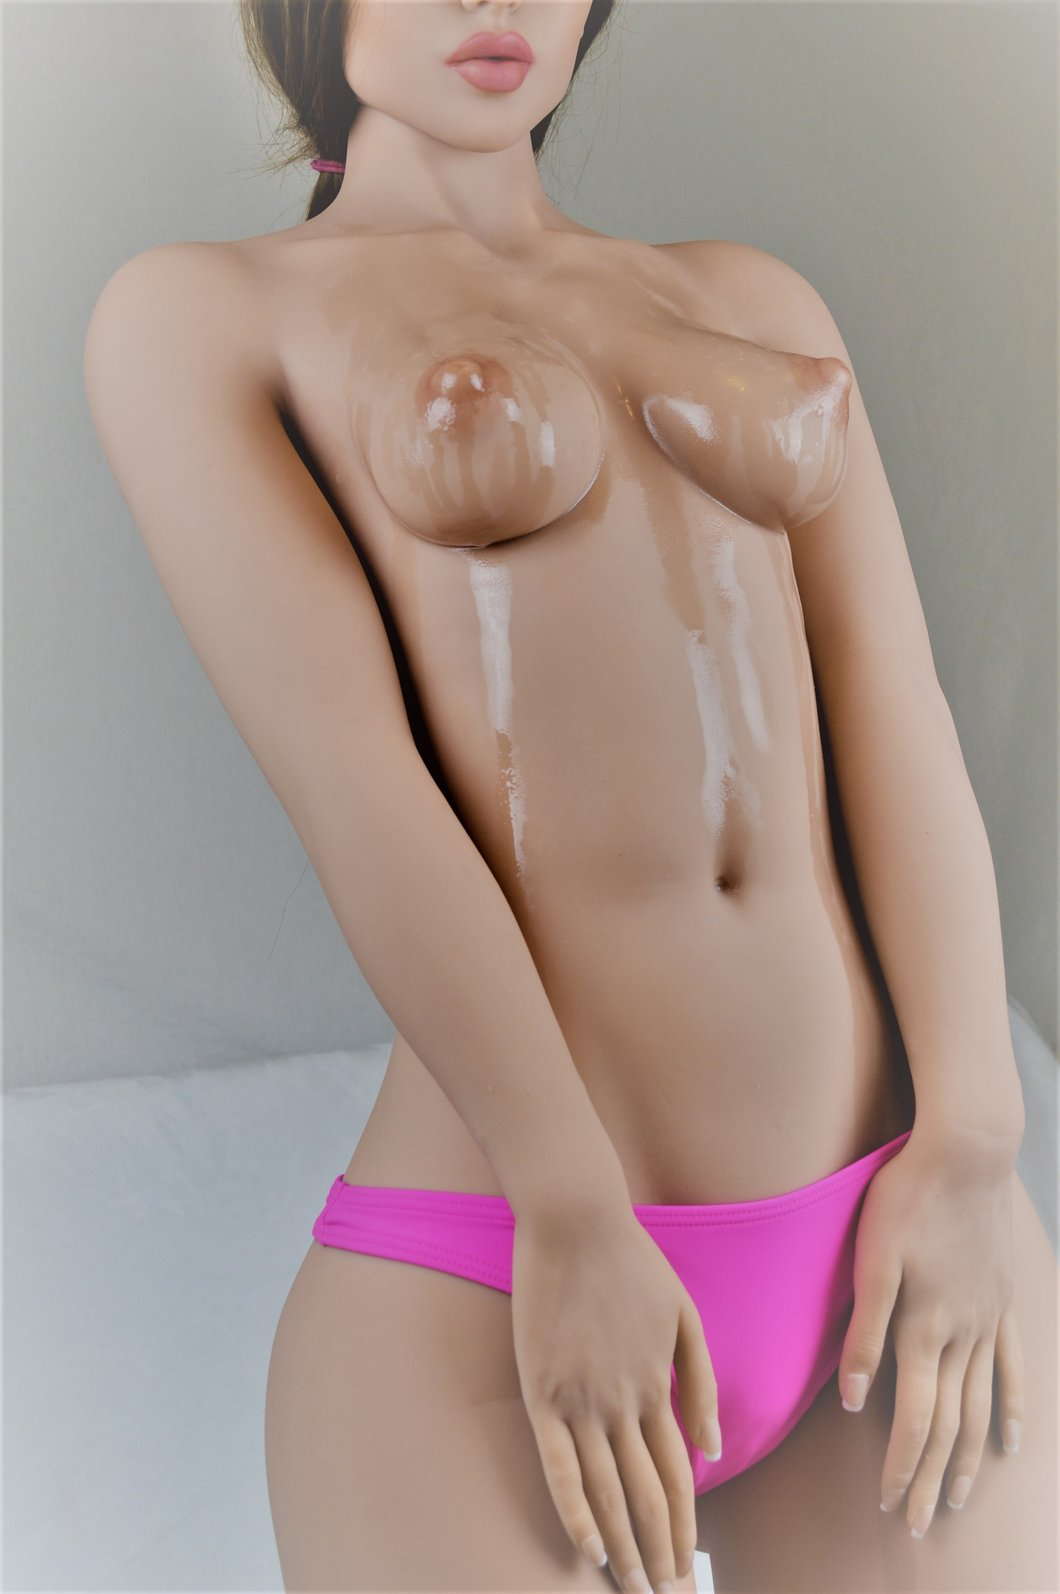 delisa 160cm brown hair athletic flat chested tpe wm sex doll(3)